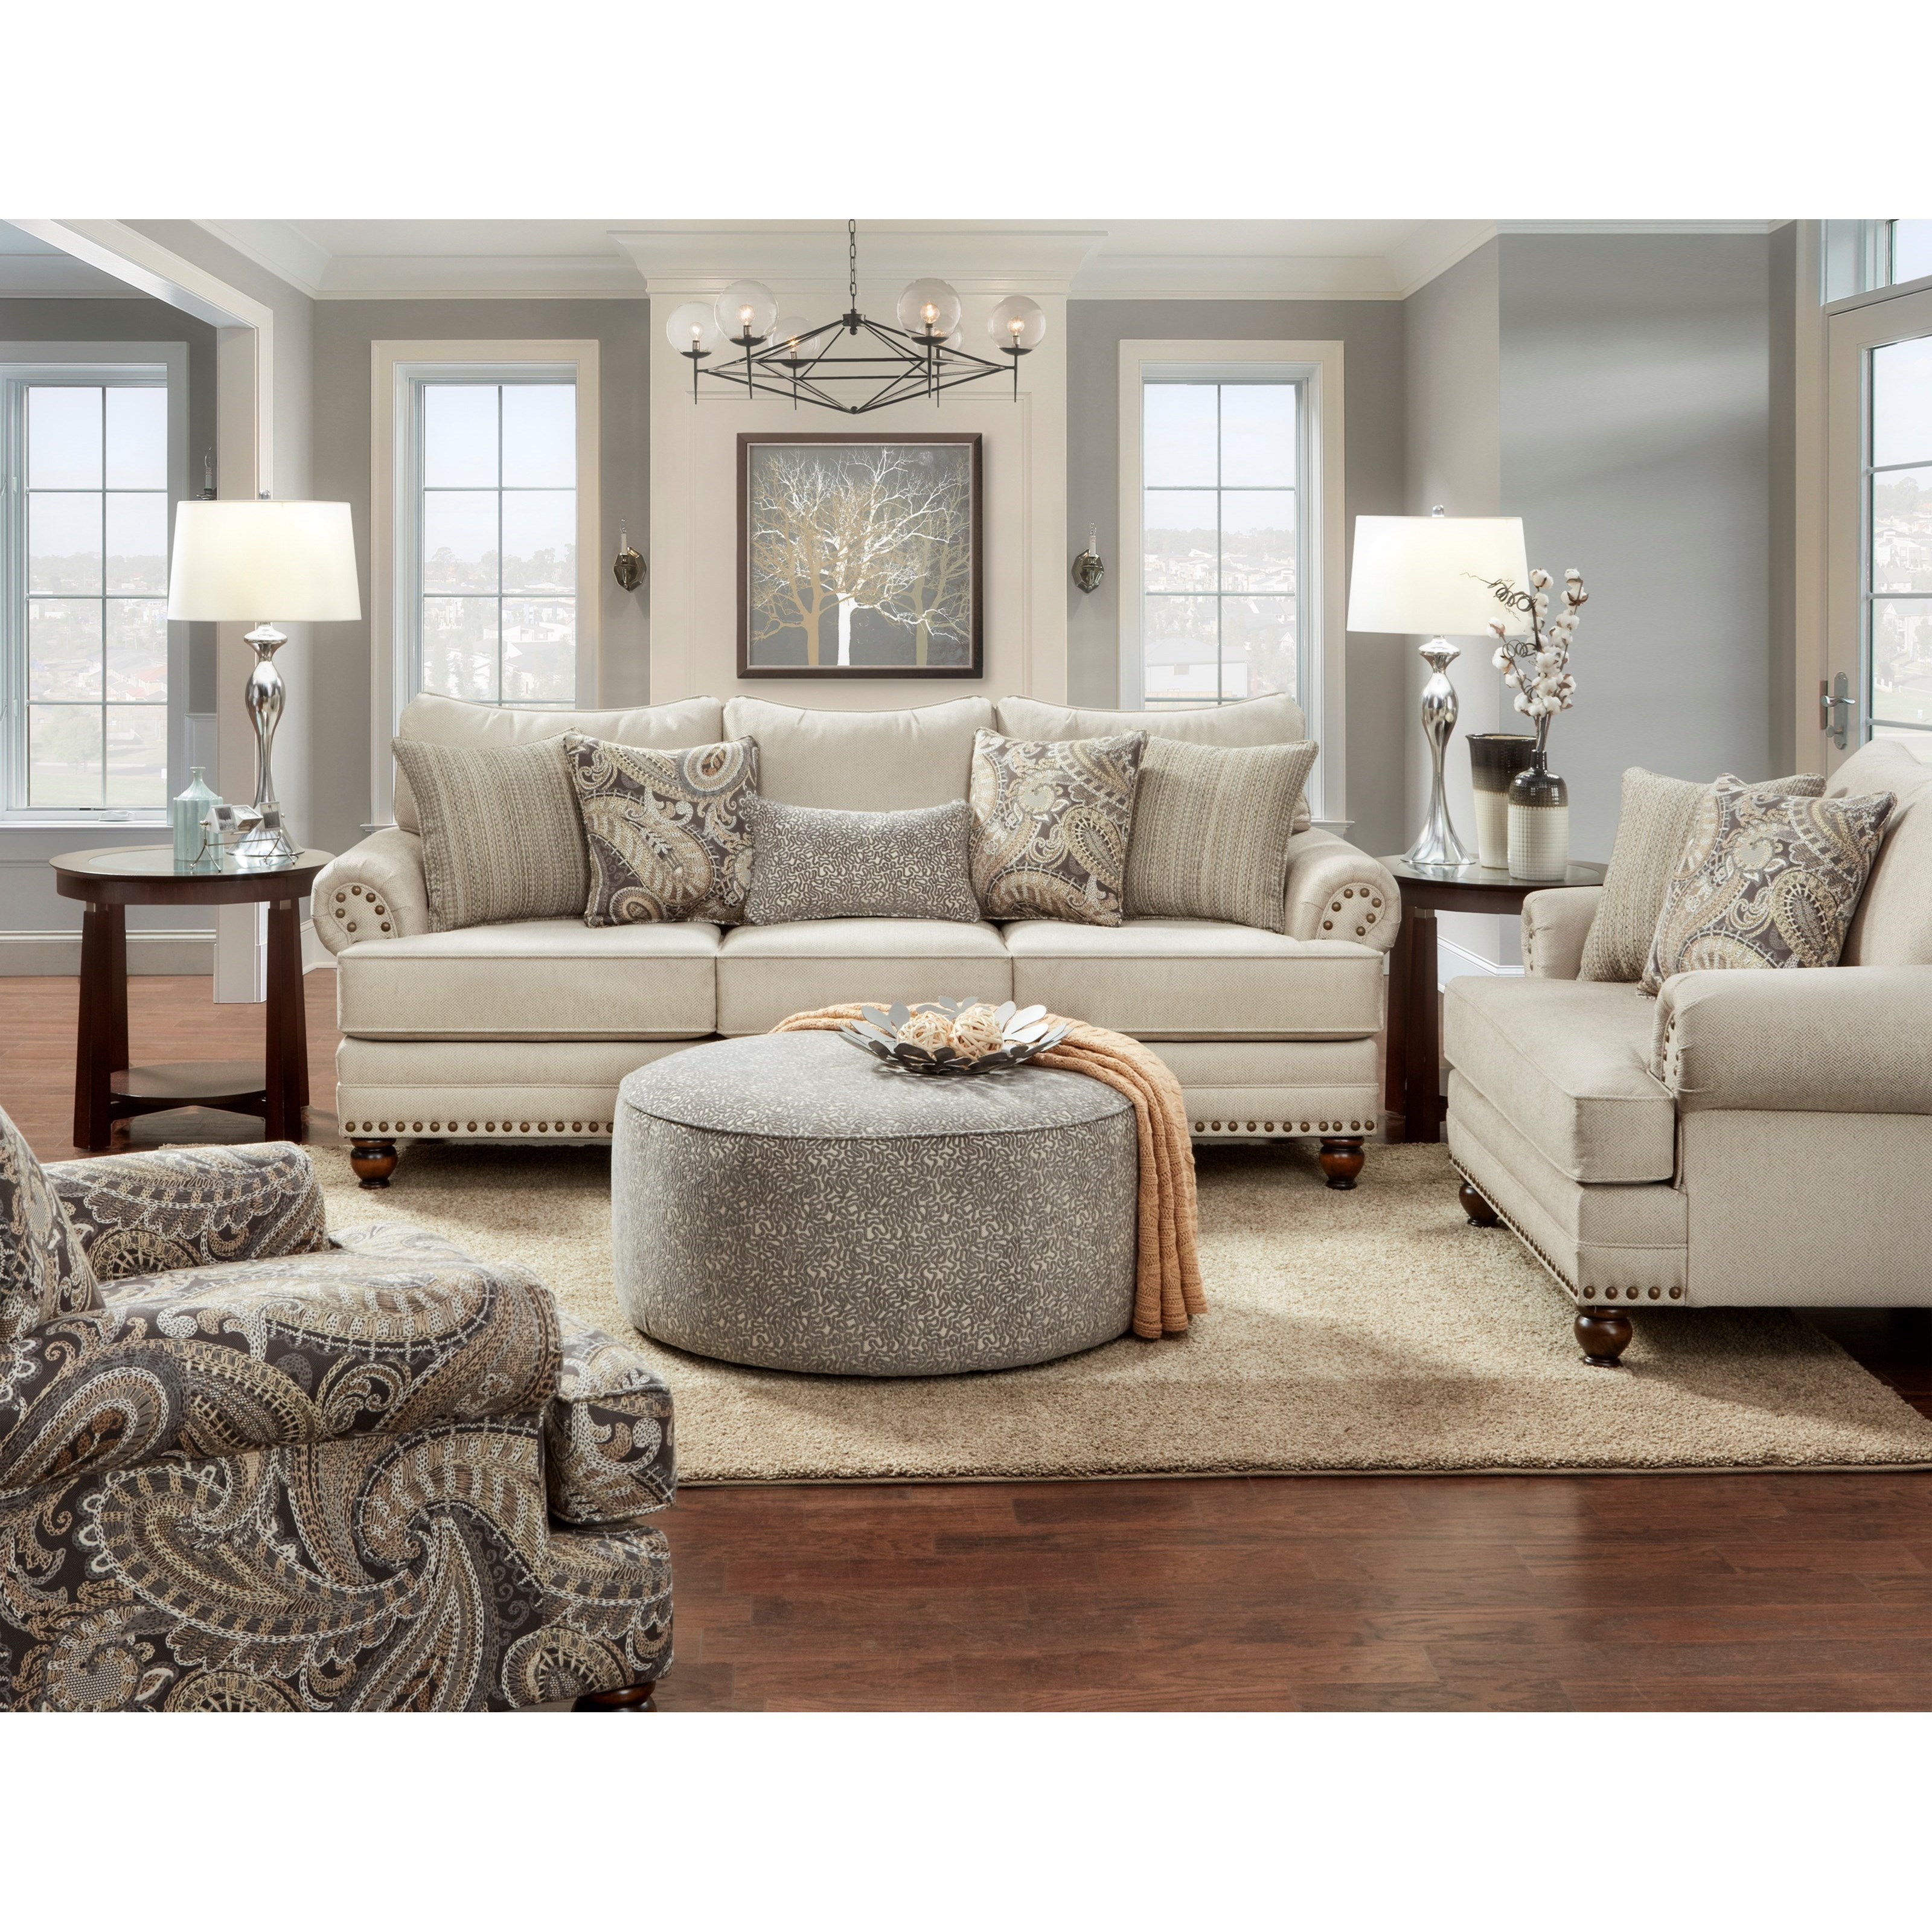 2820 Stationary Living Room Group by Fusion Furniture at Wilson's Furniture